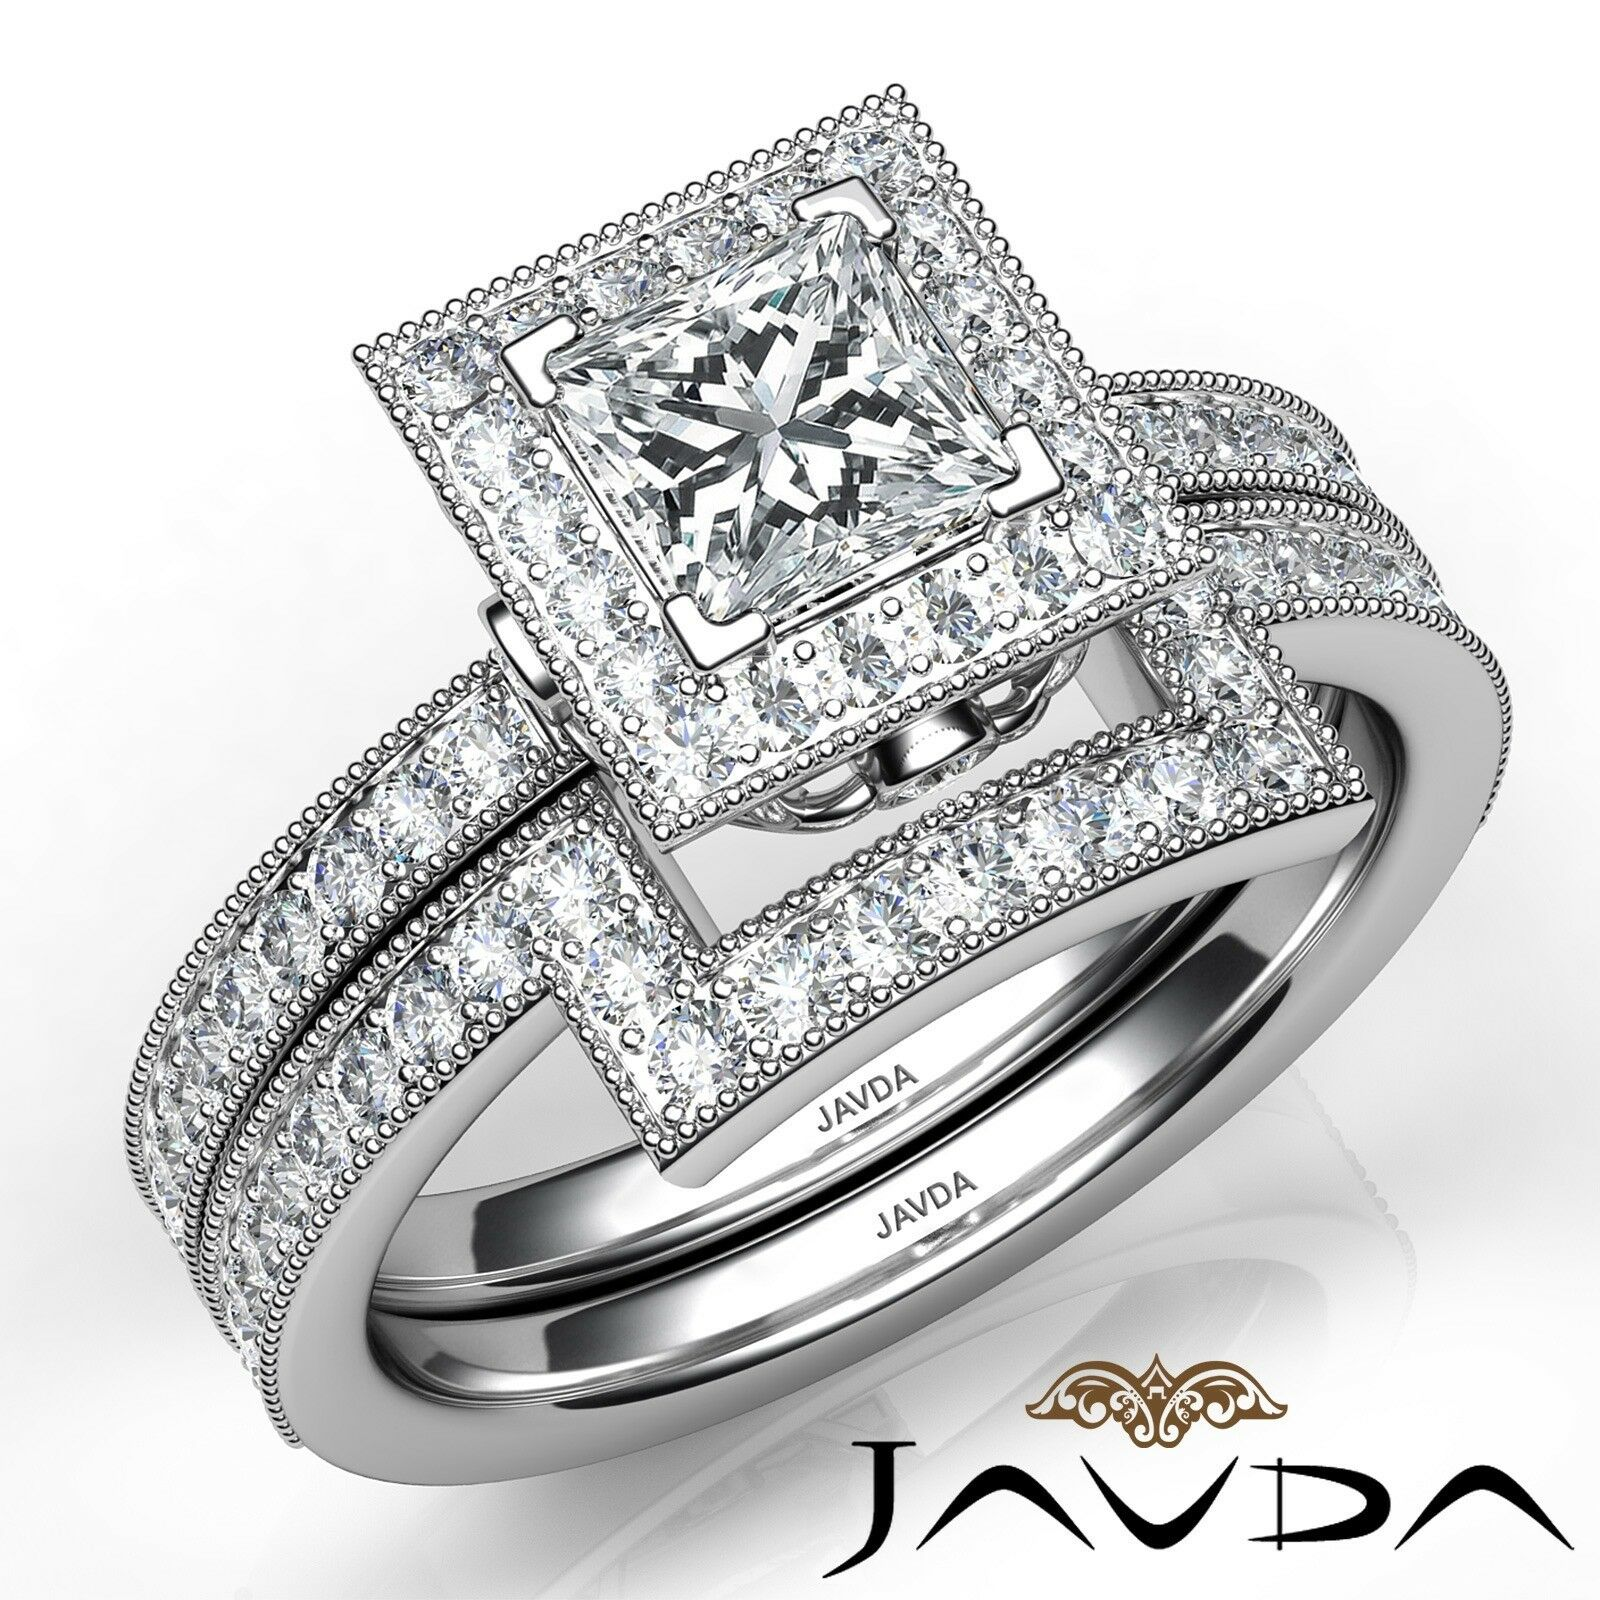 1.9ct Milgrain Edge Bridal Set Princess Diamond Engagement Ring GIA F-VS2 W Gold 1